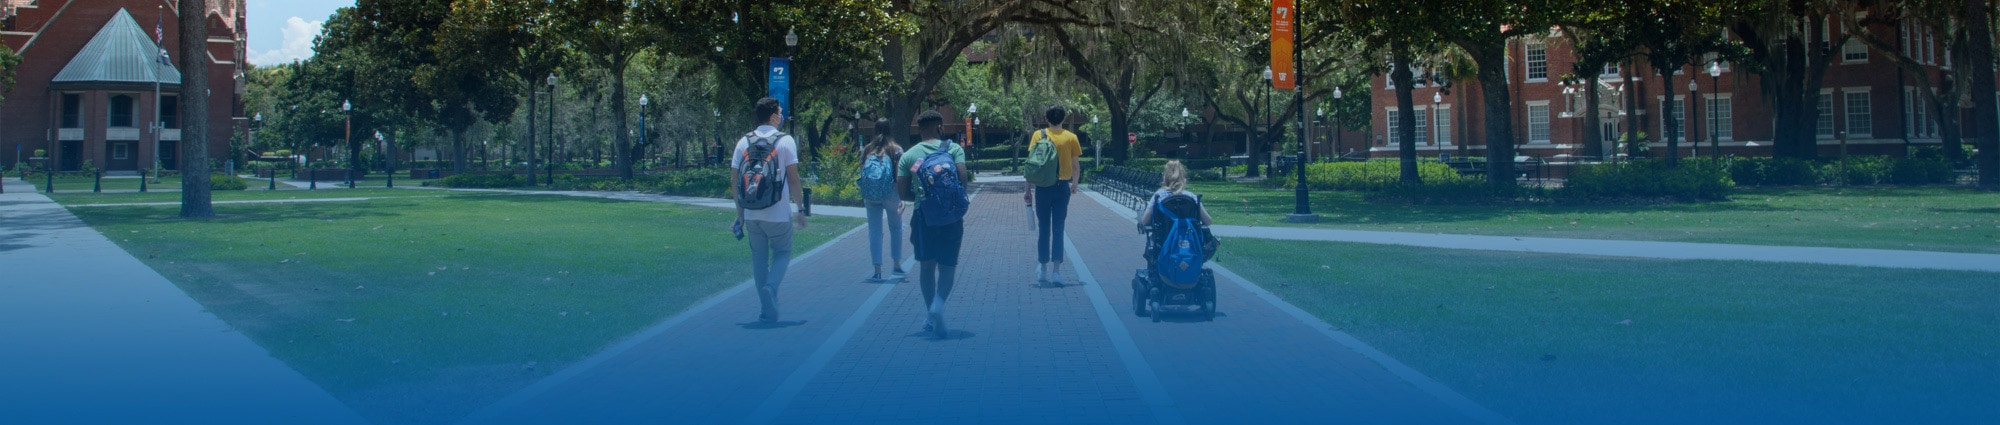 Five students traversing through the Plaza of the Americas, one student is in a motorized wheelchair